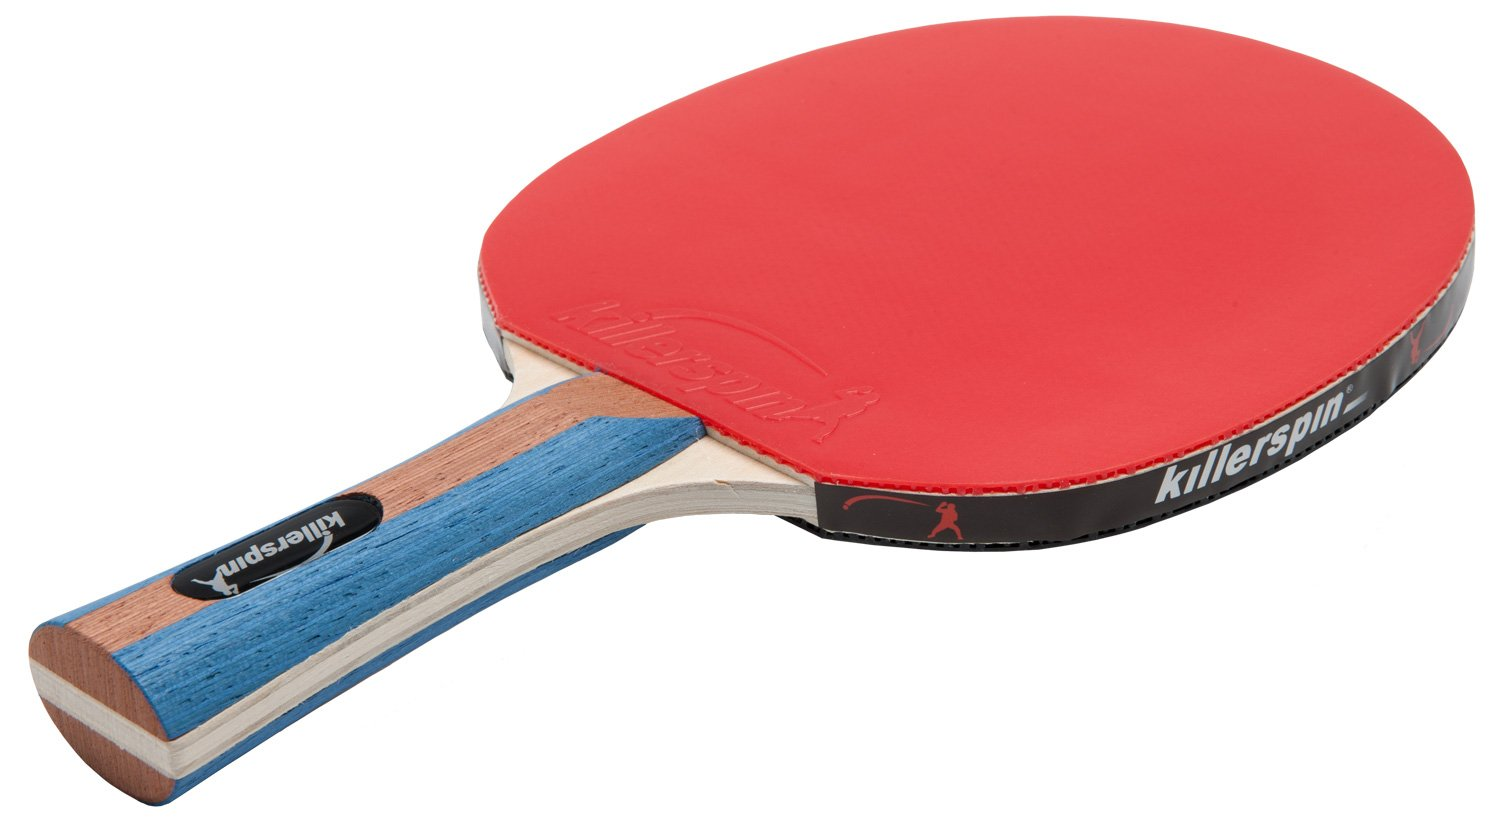 Table tennis racket png - Amazon Com Killerspin Jetset 4 Pemium Table Tennis Paddle Set With 6 Balls Table Tennis Rackets Sports Outdoors